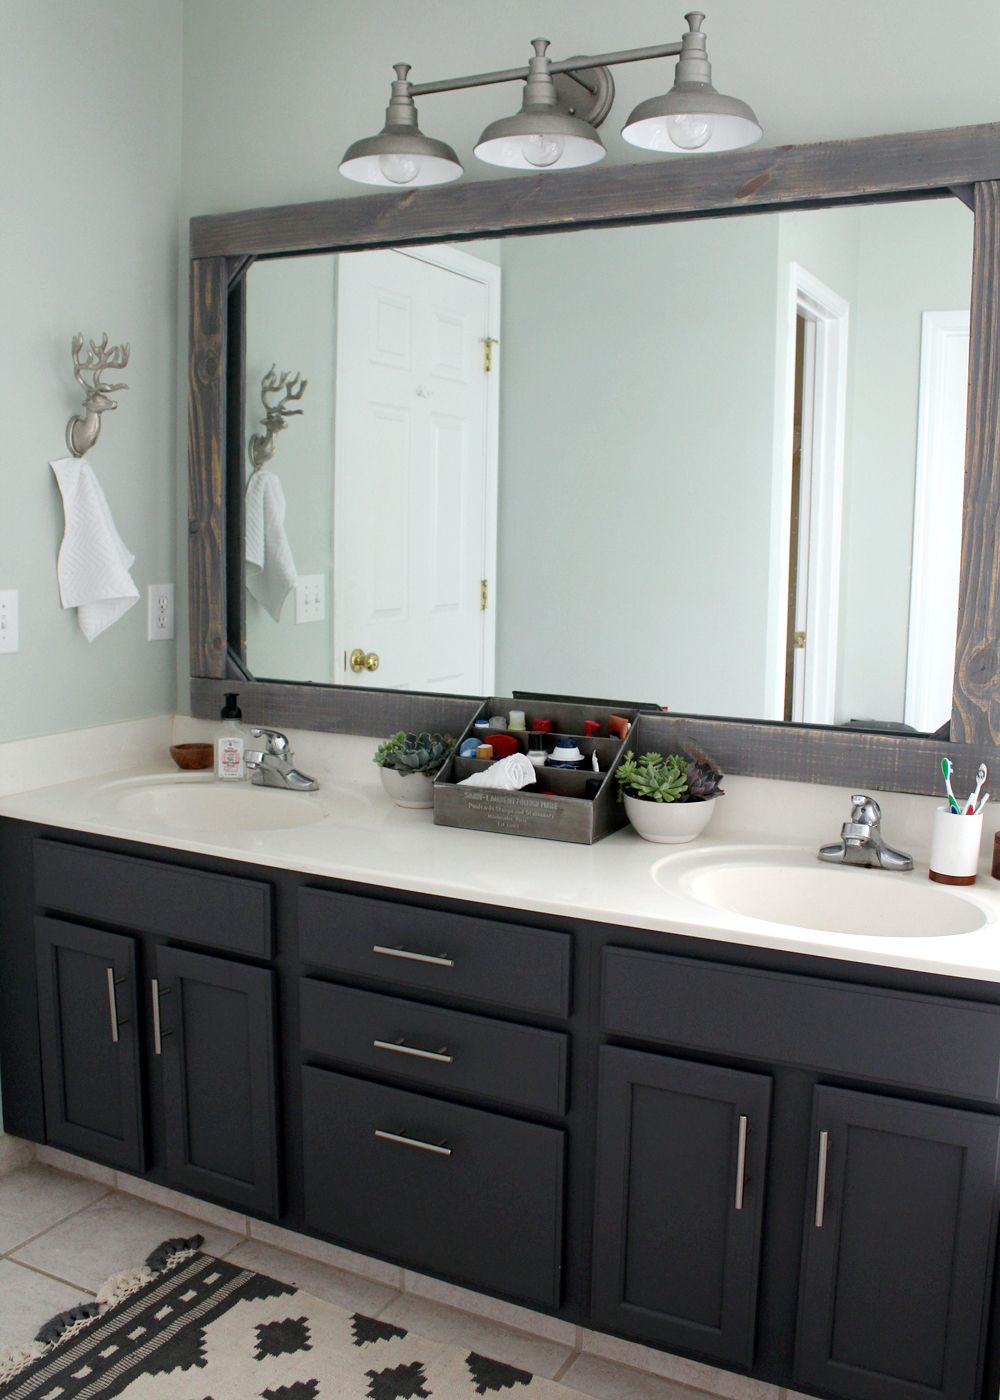 Bathroom Remodel Mirrors $300 master bathroom remodel | master bathrooms, small basement